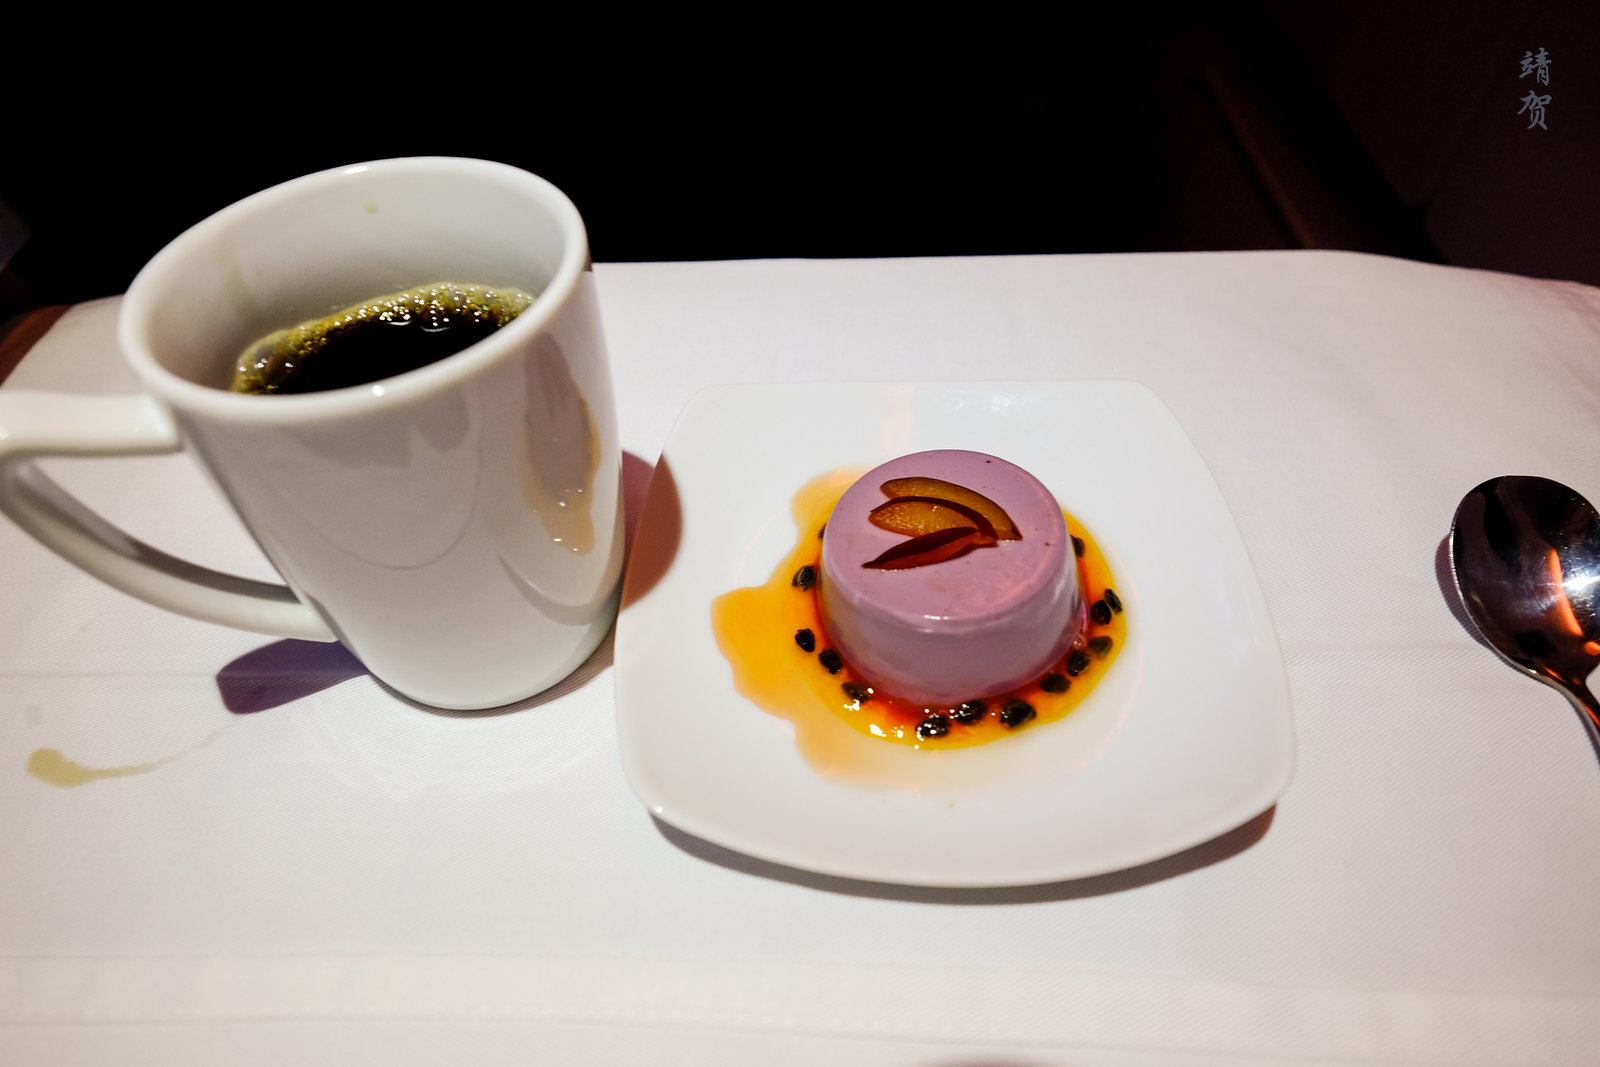 Panna cotta dessert with coffee